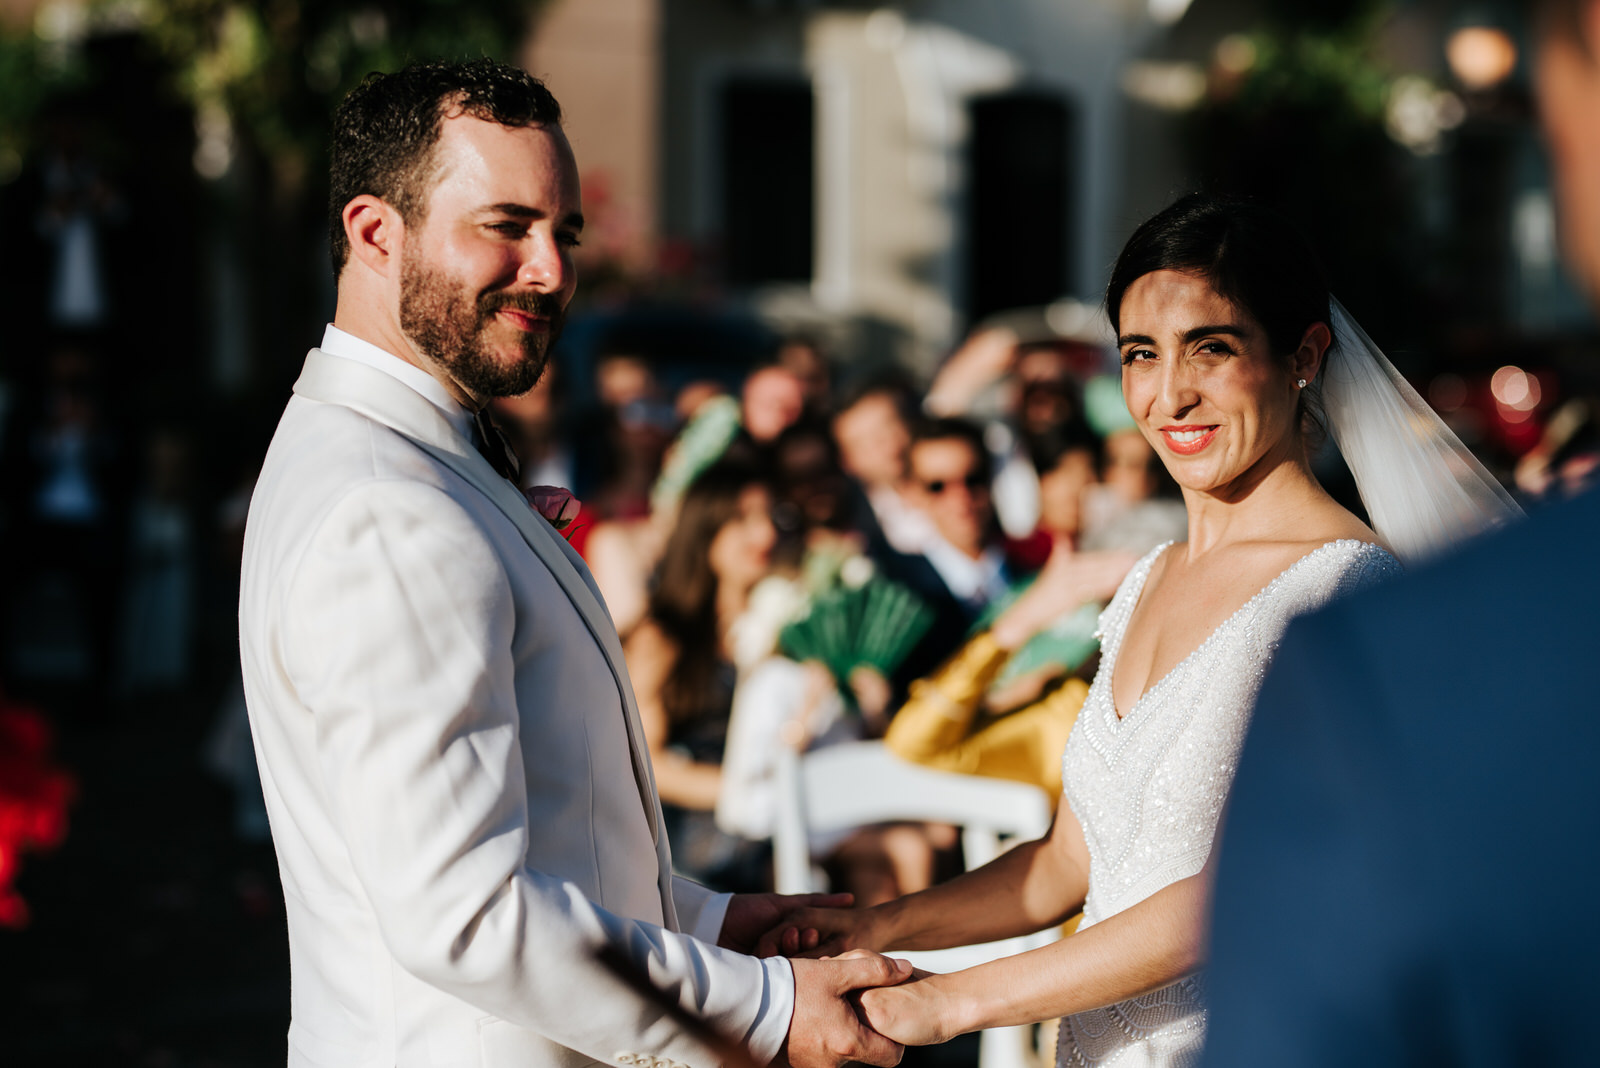 Close-up photograph of bride and groom holding hands and smiling at their officiant as he conducts the wedding ceremony